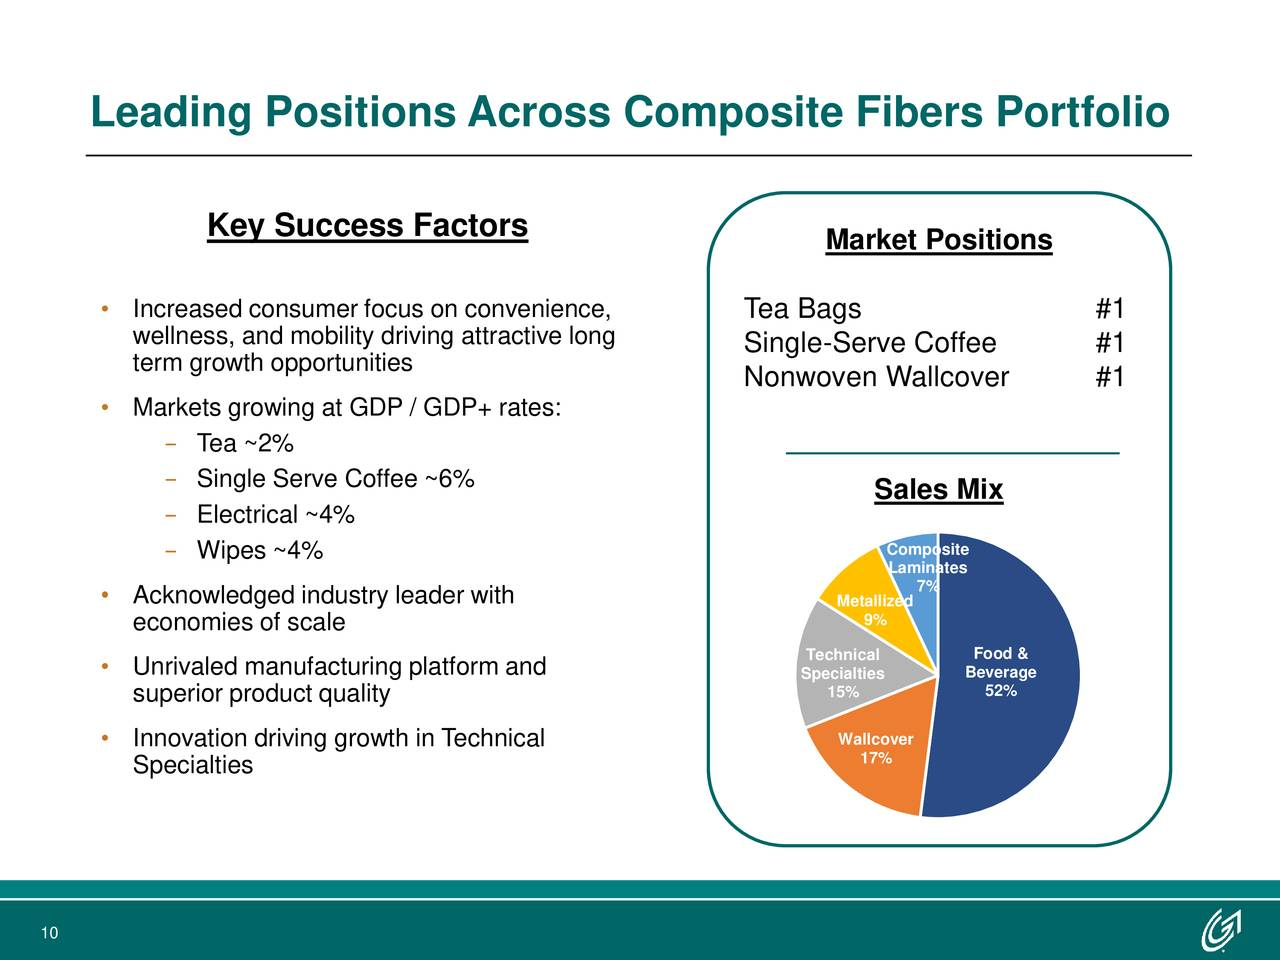 Key Success Factors Market Positions • Increased consumer focus on convenience, Tea Bags #1 wellness, and mobility driving attractive long Single-Serve Coffee #1 term growth opportunities Nonwoven Wallcover #1 • Markets growing at GDP / GDP+ rates: − Tea ~2% − Single Serve Coffee ~6% Sales Mix − Electrical ~4% − Wipes ~4% Composite Laminates • Acknowledged industry leader with 7% Me9%llized economies of scale Technical Food & • Unrivaled manufacturing platform and Sp15%alties Be52%age superior product quality • Innovation driving growth in Technical Wa17%over Specialties 10